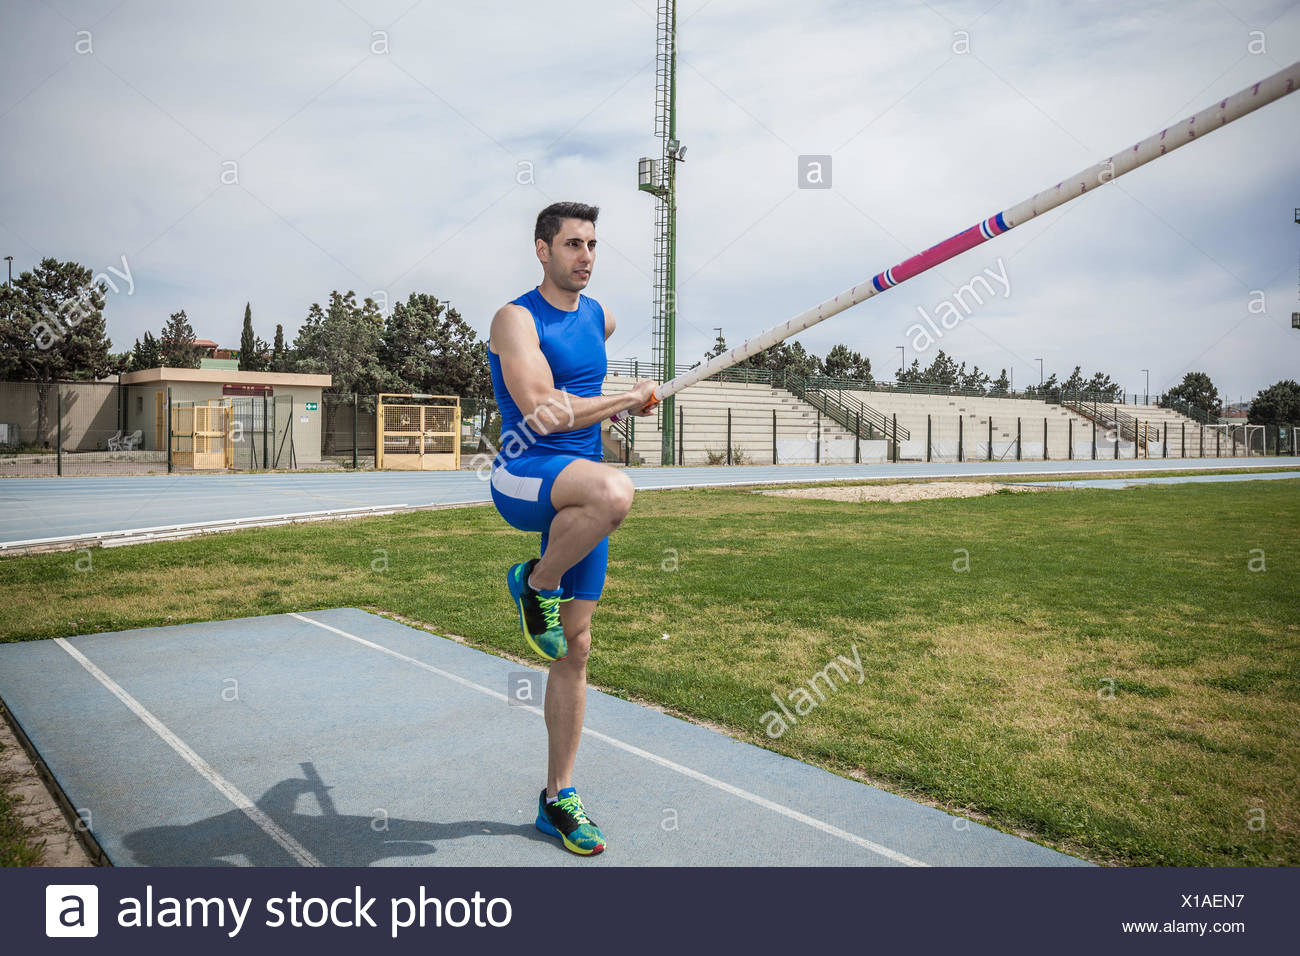 Young male pole vaulter pole vaulting at sport facility - Stock Image